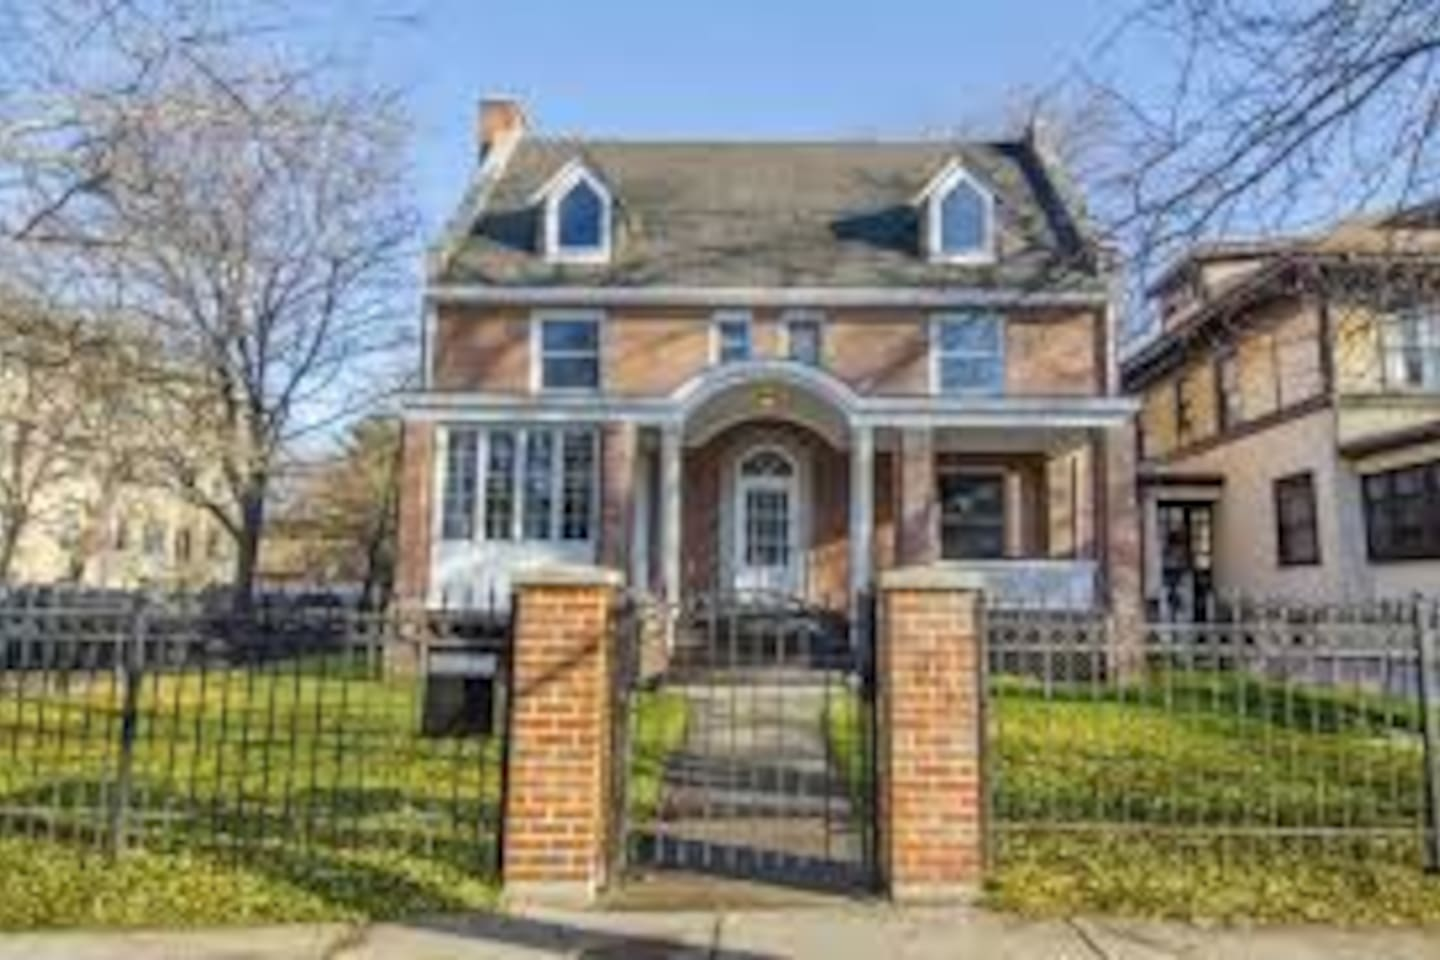 Spacious 3rd floor private suite in beautiful historic red brick situated in leafy Rogers Park a short walk from the lake and close to many public transport options to downrown (Metra, Red Line L and bus routes).  Close to Loyola and North Shore.